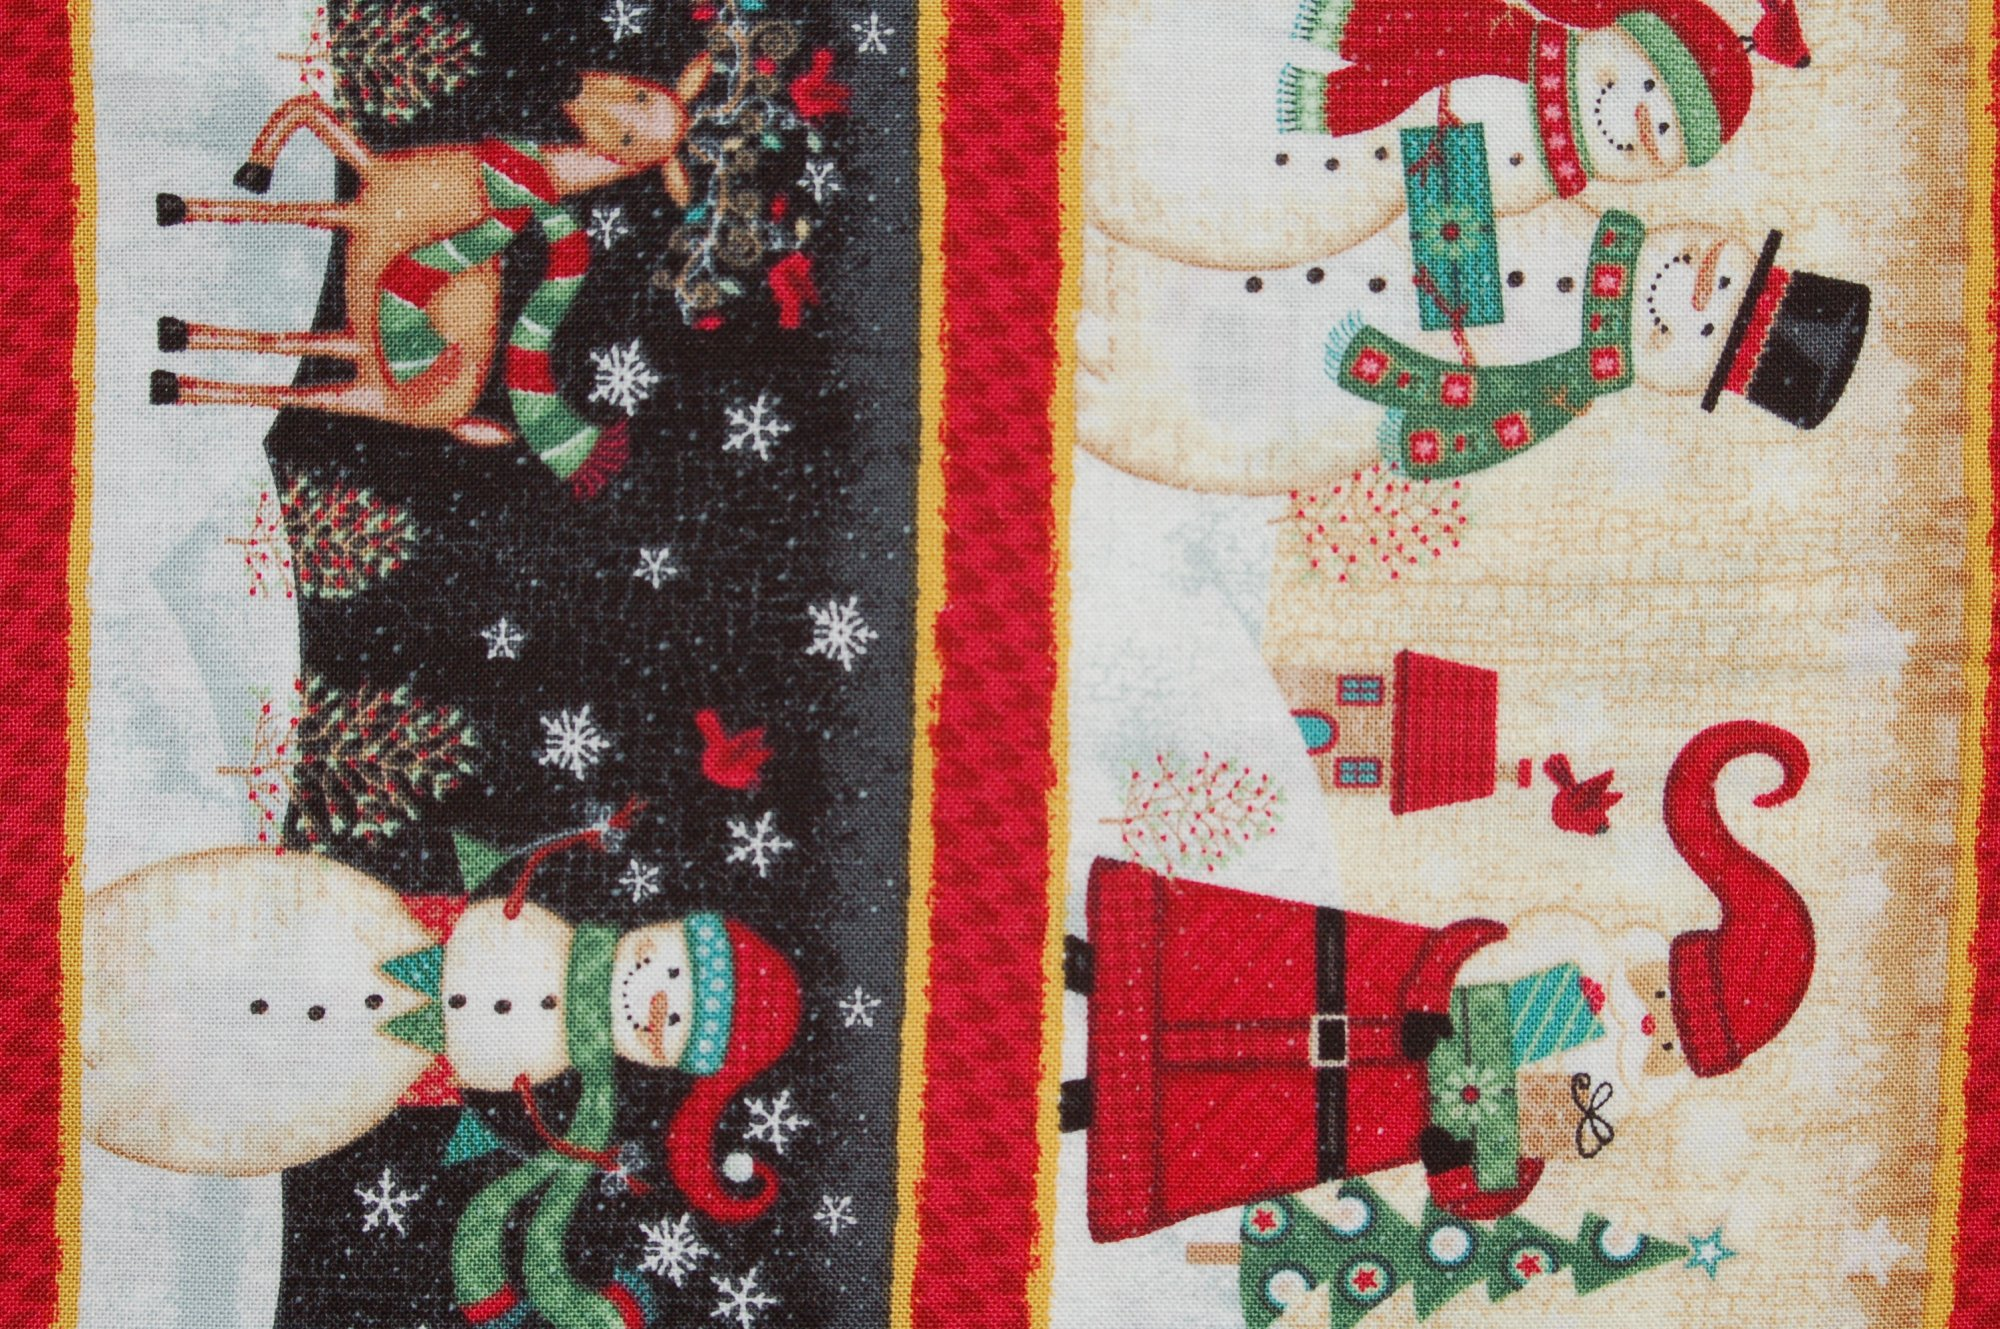 Holly Jolly Christmas Border by Sharla Fults for Studio E